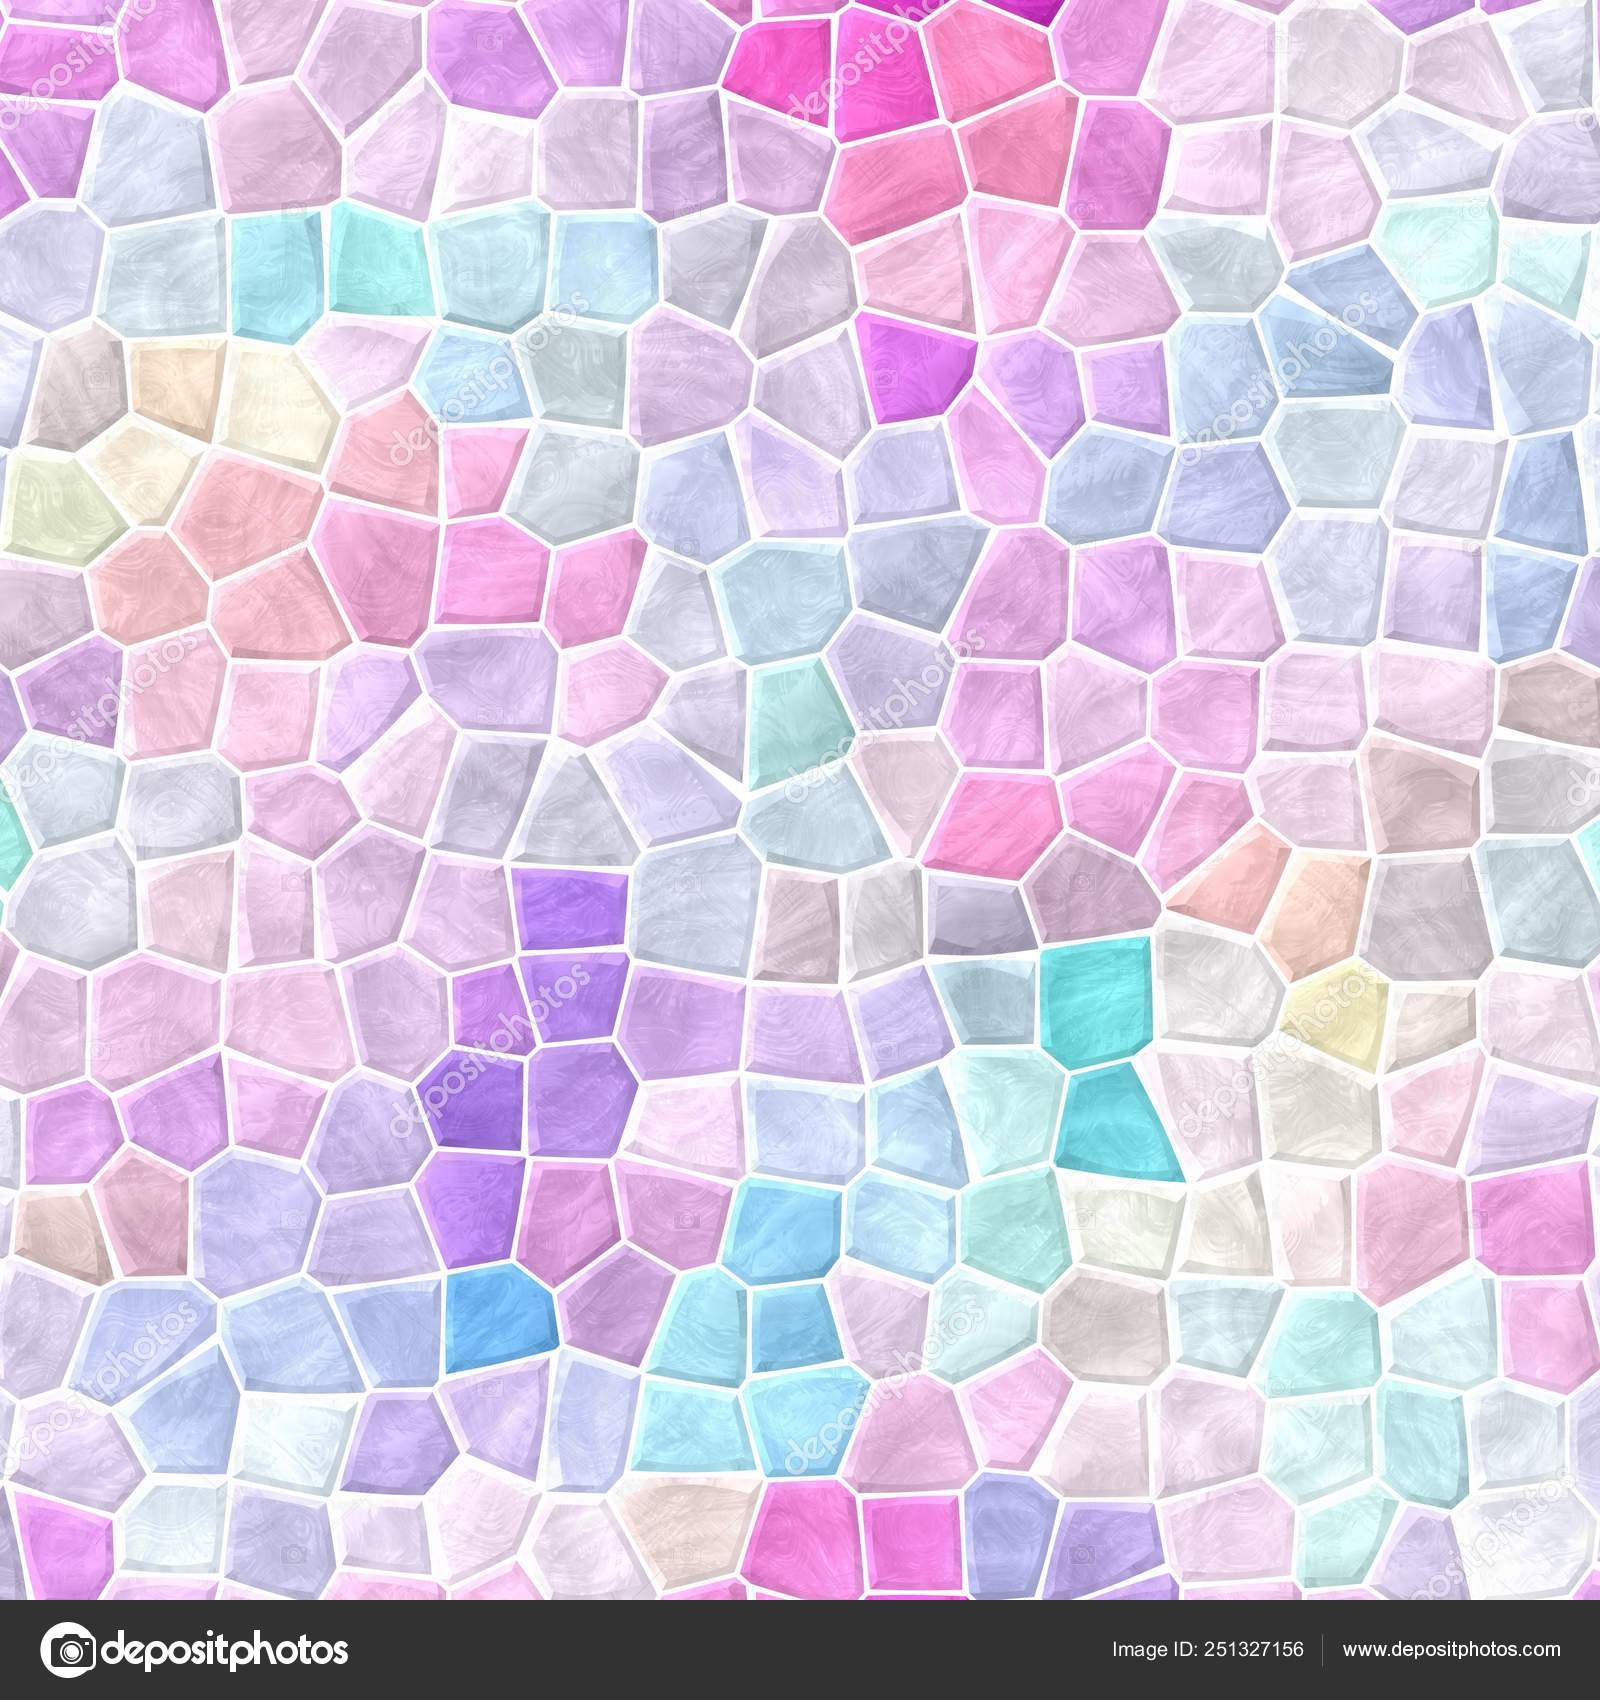 Abstract Nature Marble Plastic Stony Mosaic Tiles Texture Background With White Grout Light Pastel Pink Blue Purple Violet Gray Mauve Colors Stock Photo C Ardely 251327156